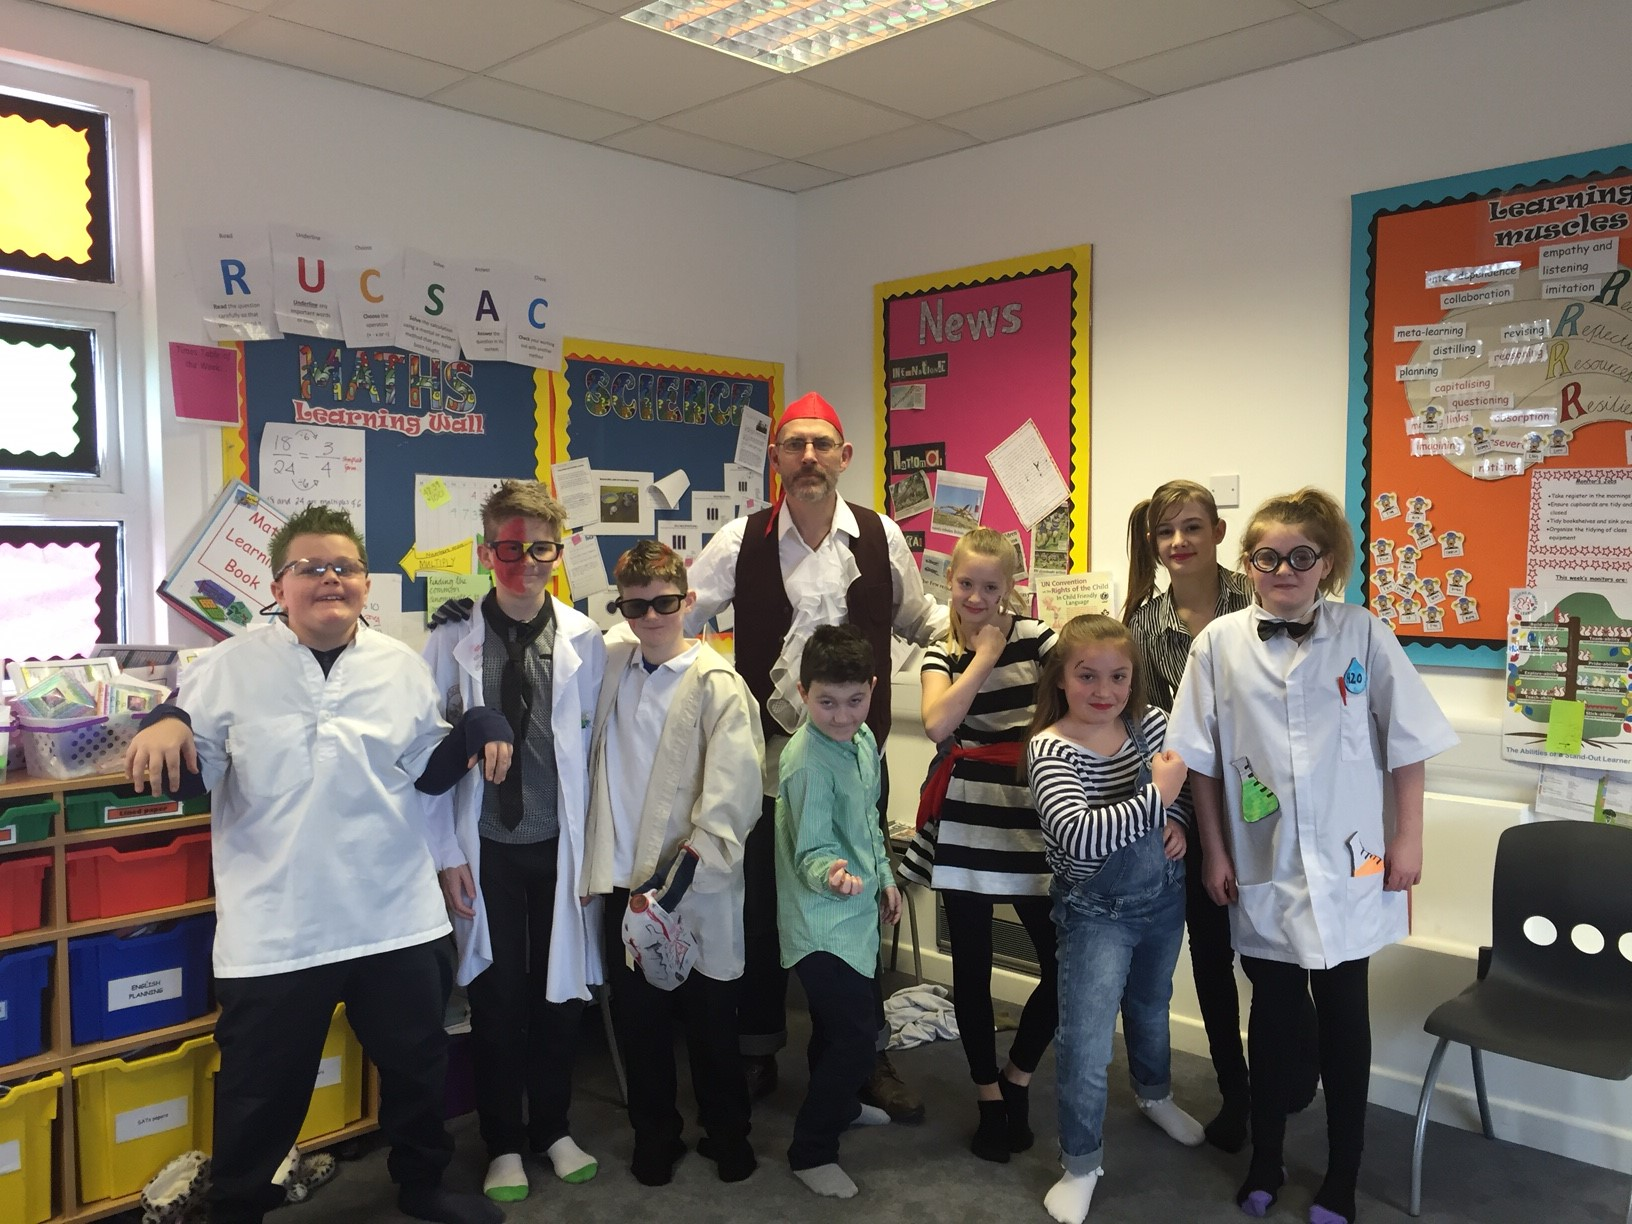 Pirates and Mad Scientists Day